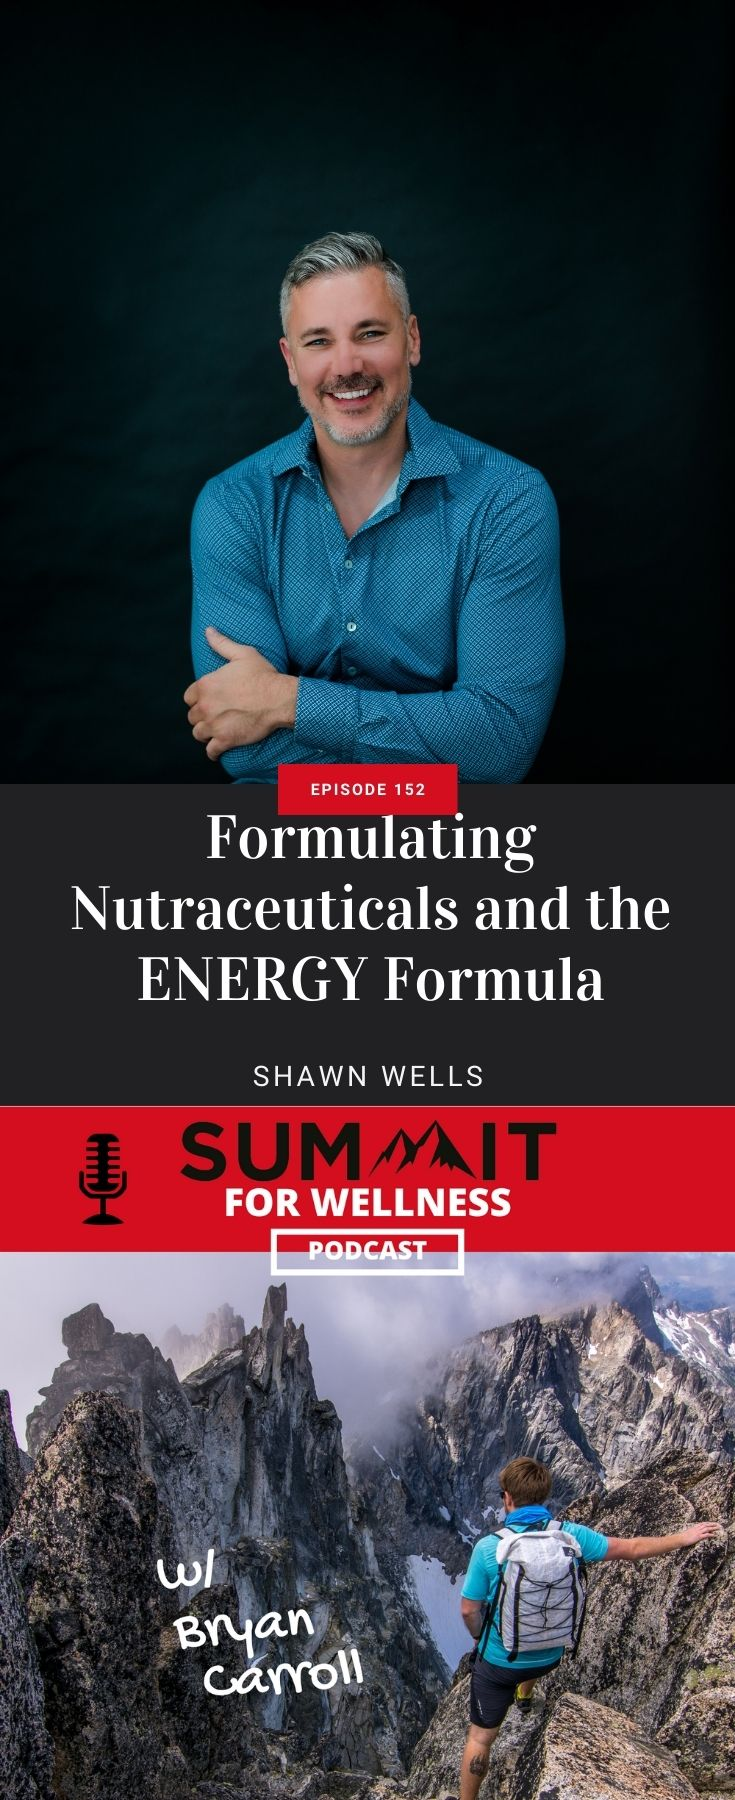 Shawn Wells teaches us about supplements